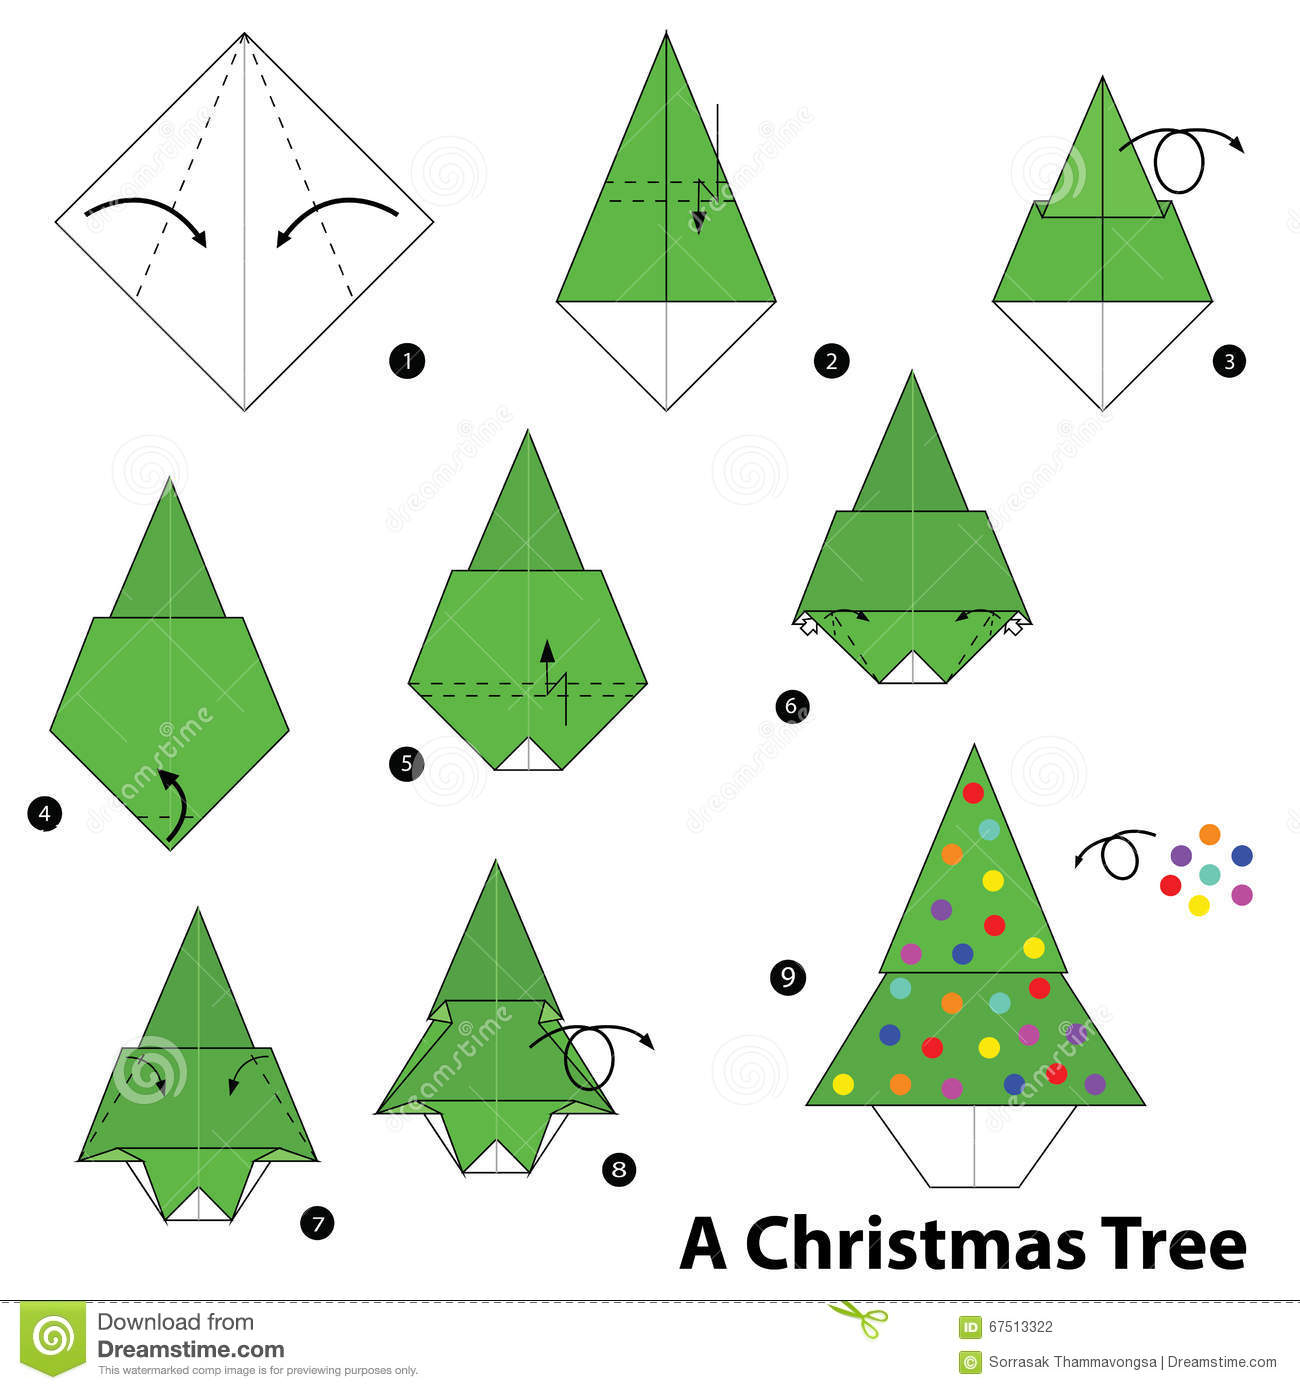 How To Do Origami Christmas Decorations | www.indiepedia.org - photo#31